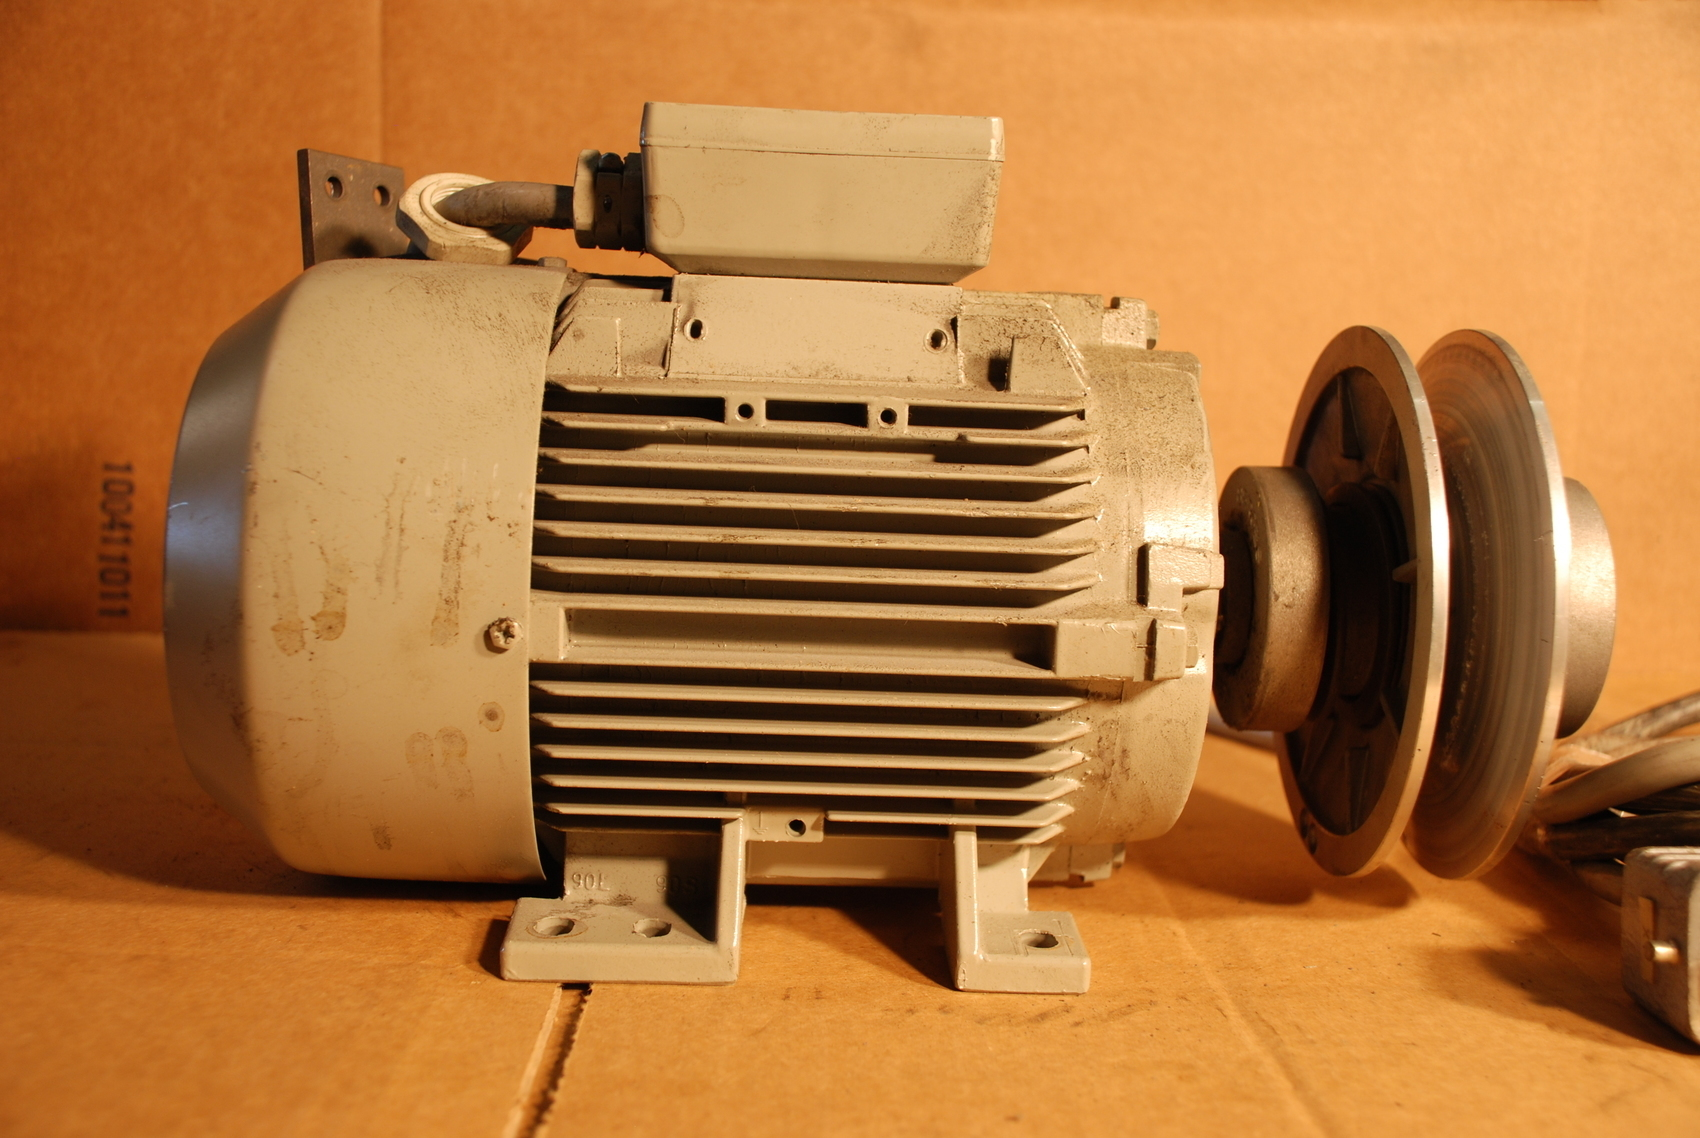 Dietz 1 1 kw electric motor 3 ph 1665 1730 rpm inv 18248 1 kw electric motor